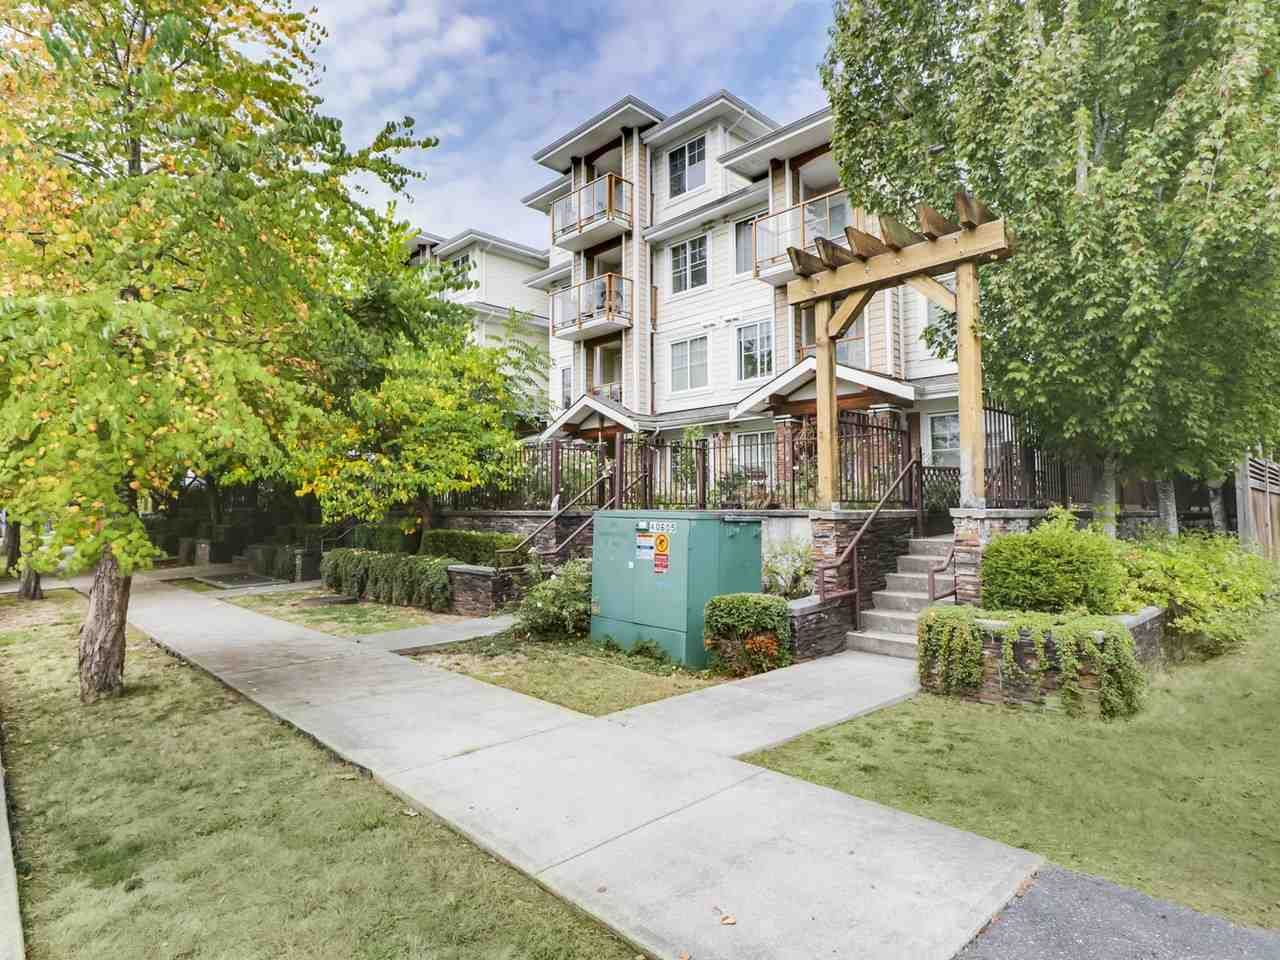 """Main Photo: 304 1969 WESTMINSTER Avenue in Port Coquitlam: Glenwood PQ Condo for sale in """"THE SAPHHIRE"""" : MLS®# R2504819"""